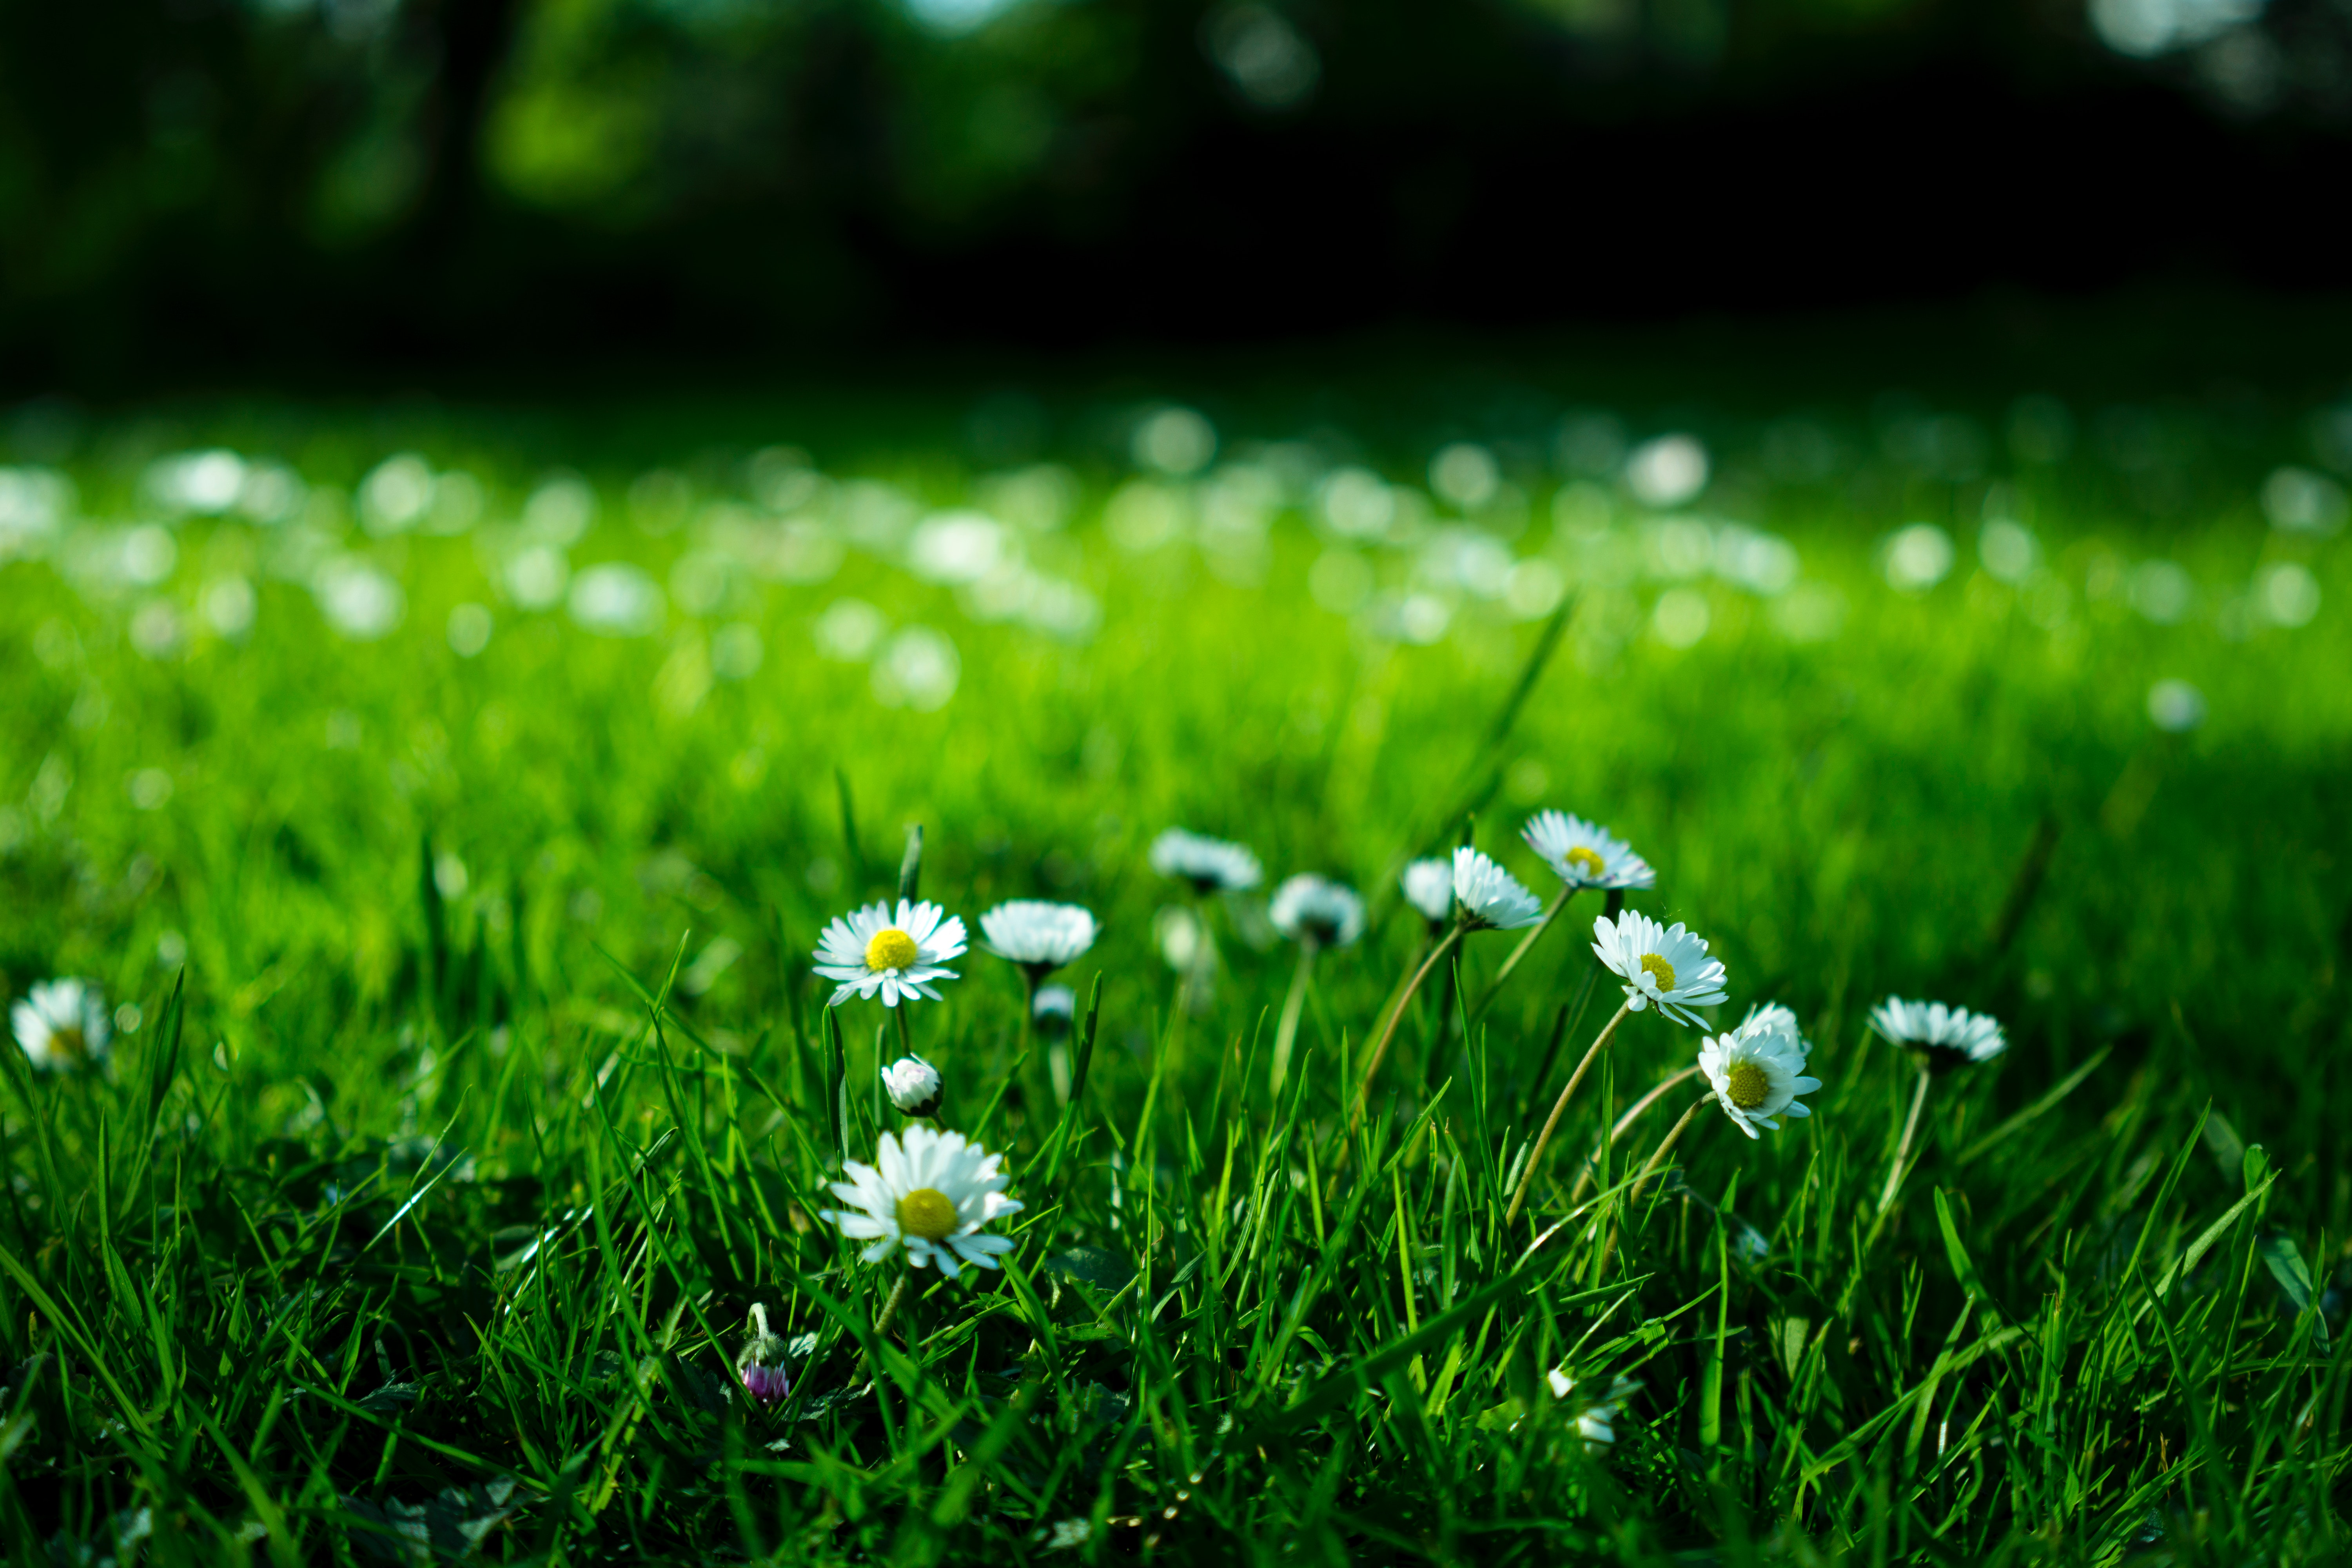 How To Get Rid of Weeds Without Hurting the Environment